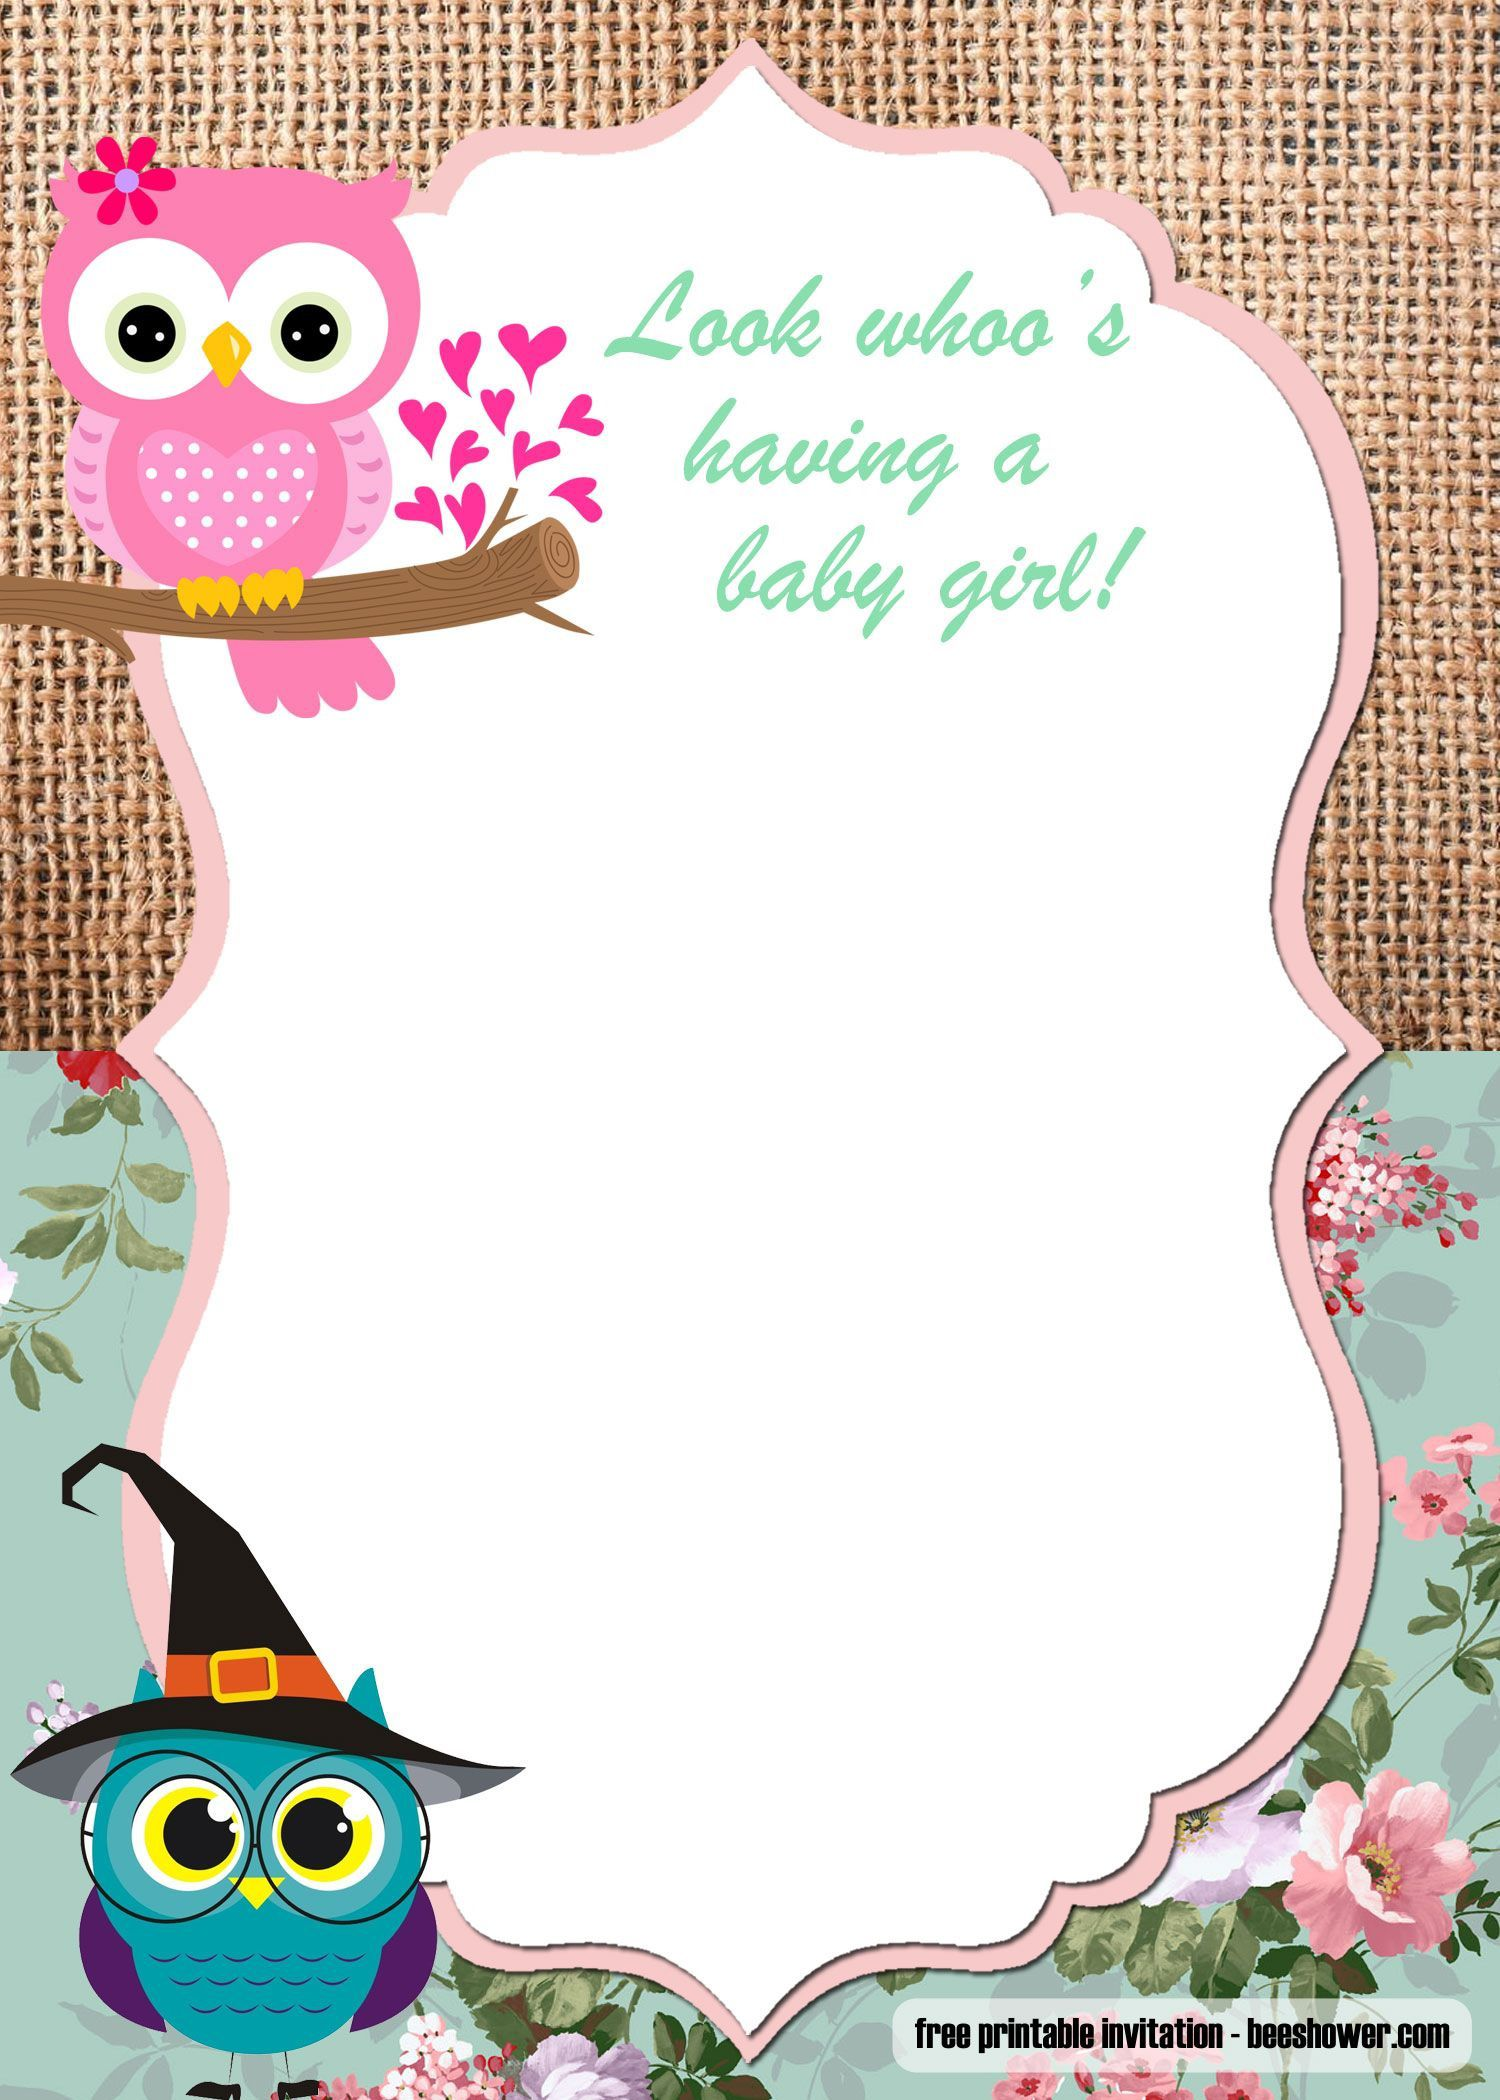 000 Unbelievable Baby Shower Template Free Printable Photo  Superhero Invitation For A Boy DiaperFull